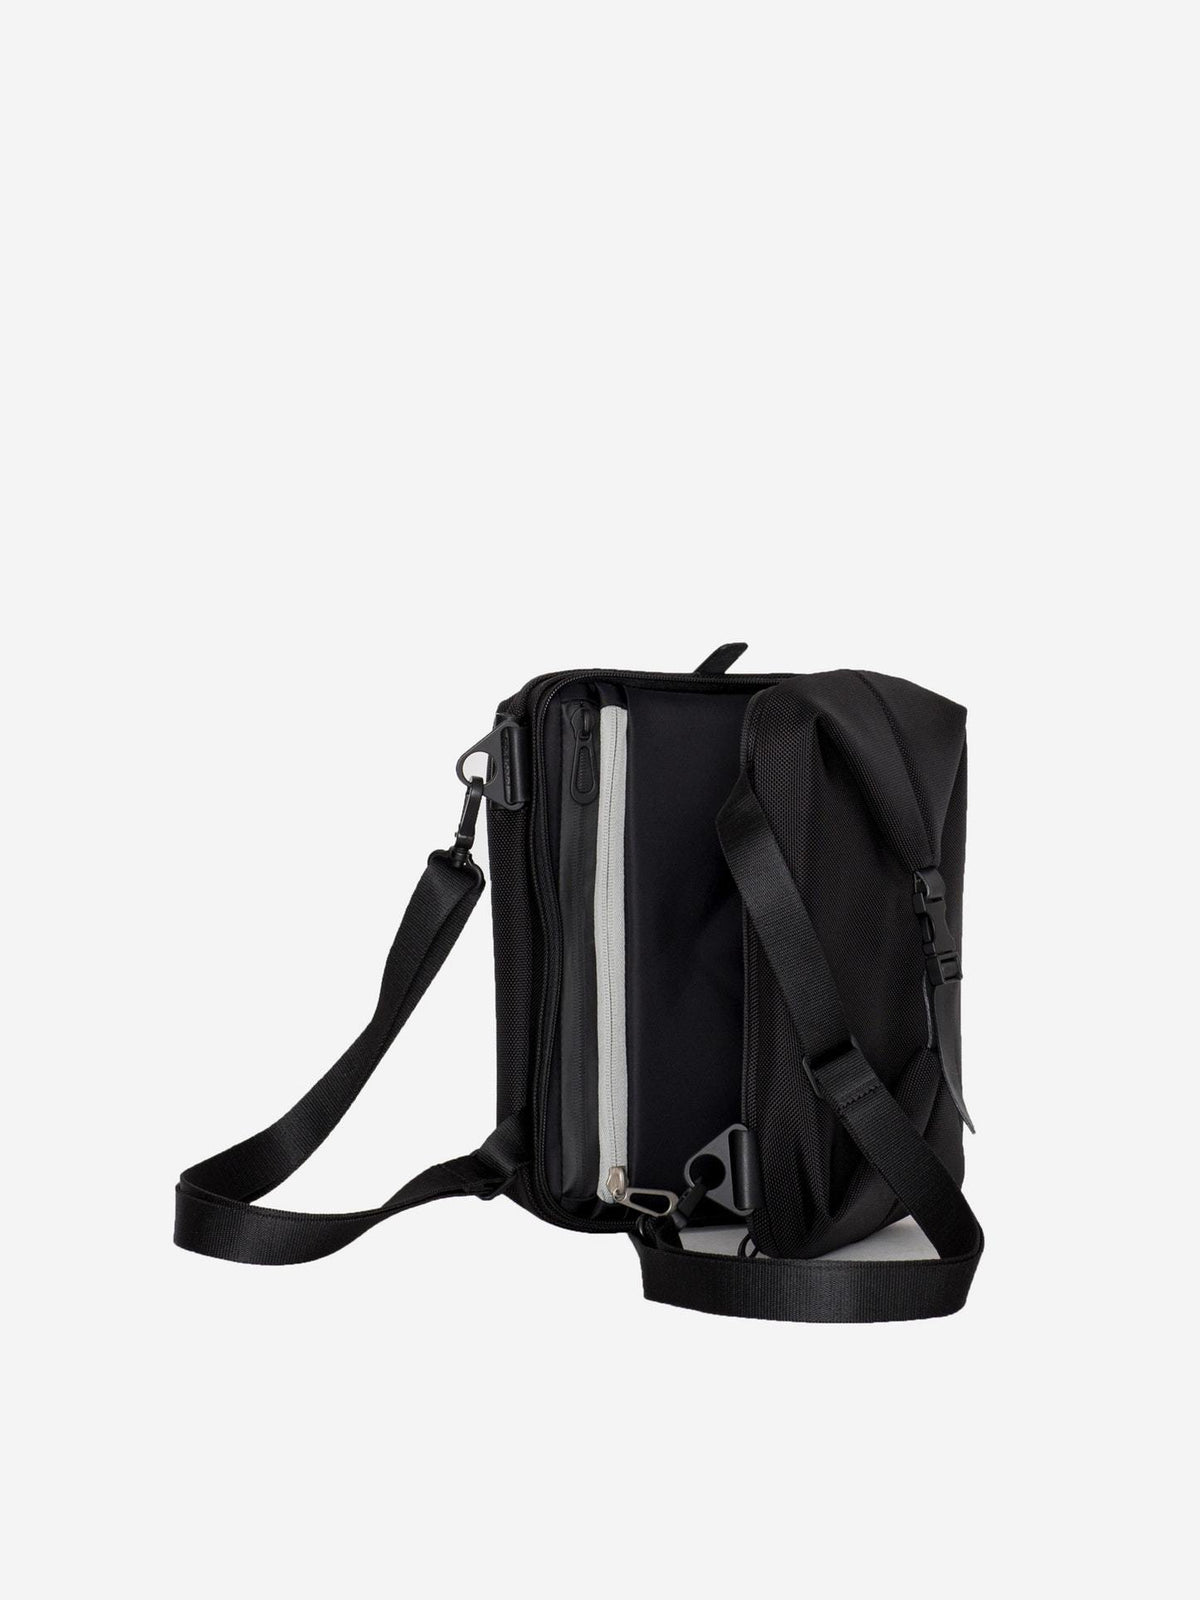 Aar Ballistic Black Backpack